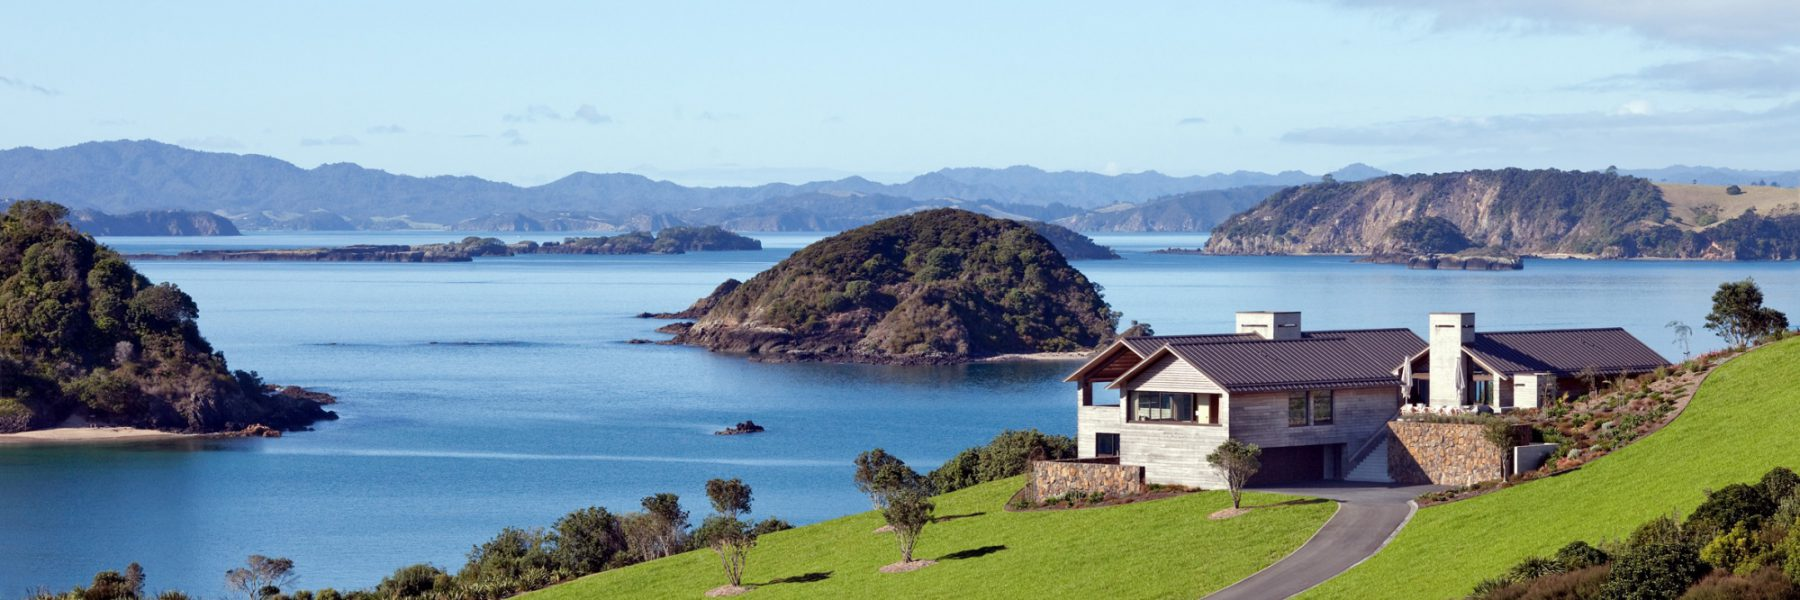 View of The Landing with rolling green grounds and the Bay of Islands in the background